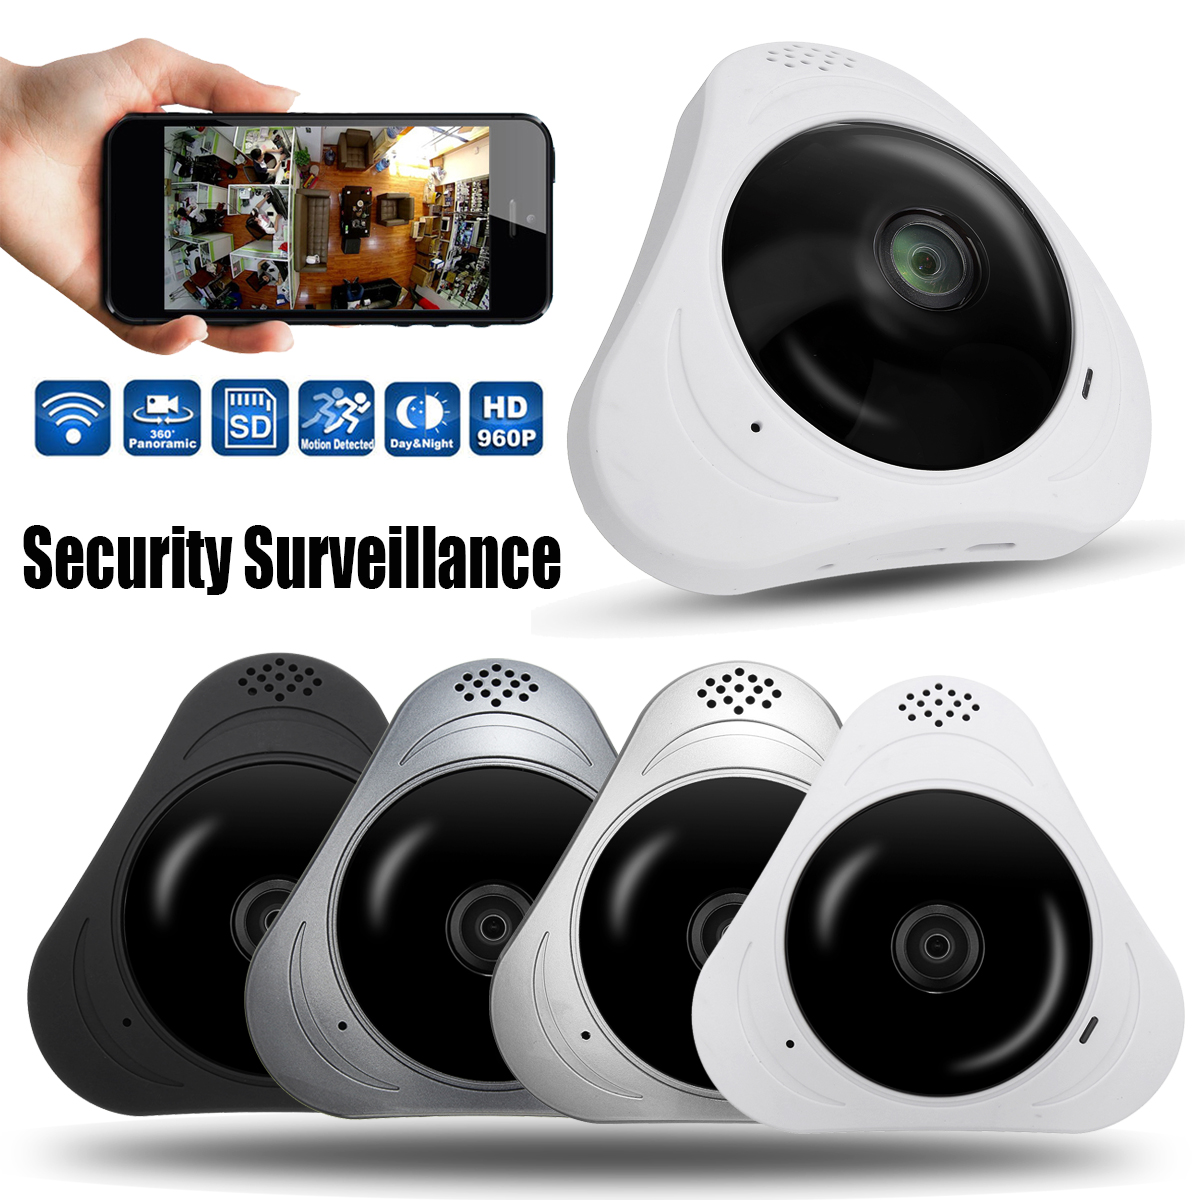 360° Panoramic Monitor 3D VR Fisheye Wifi IP Cameras Security Surveillance Home